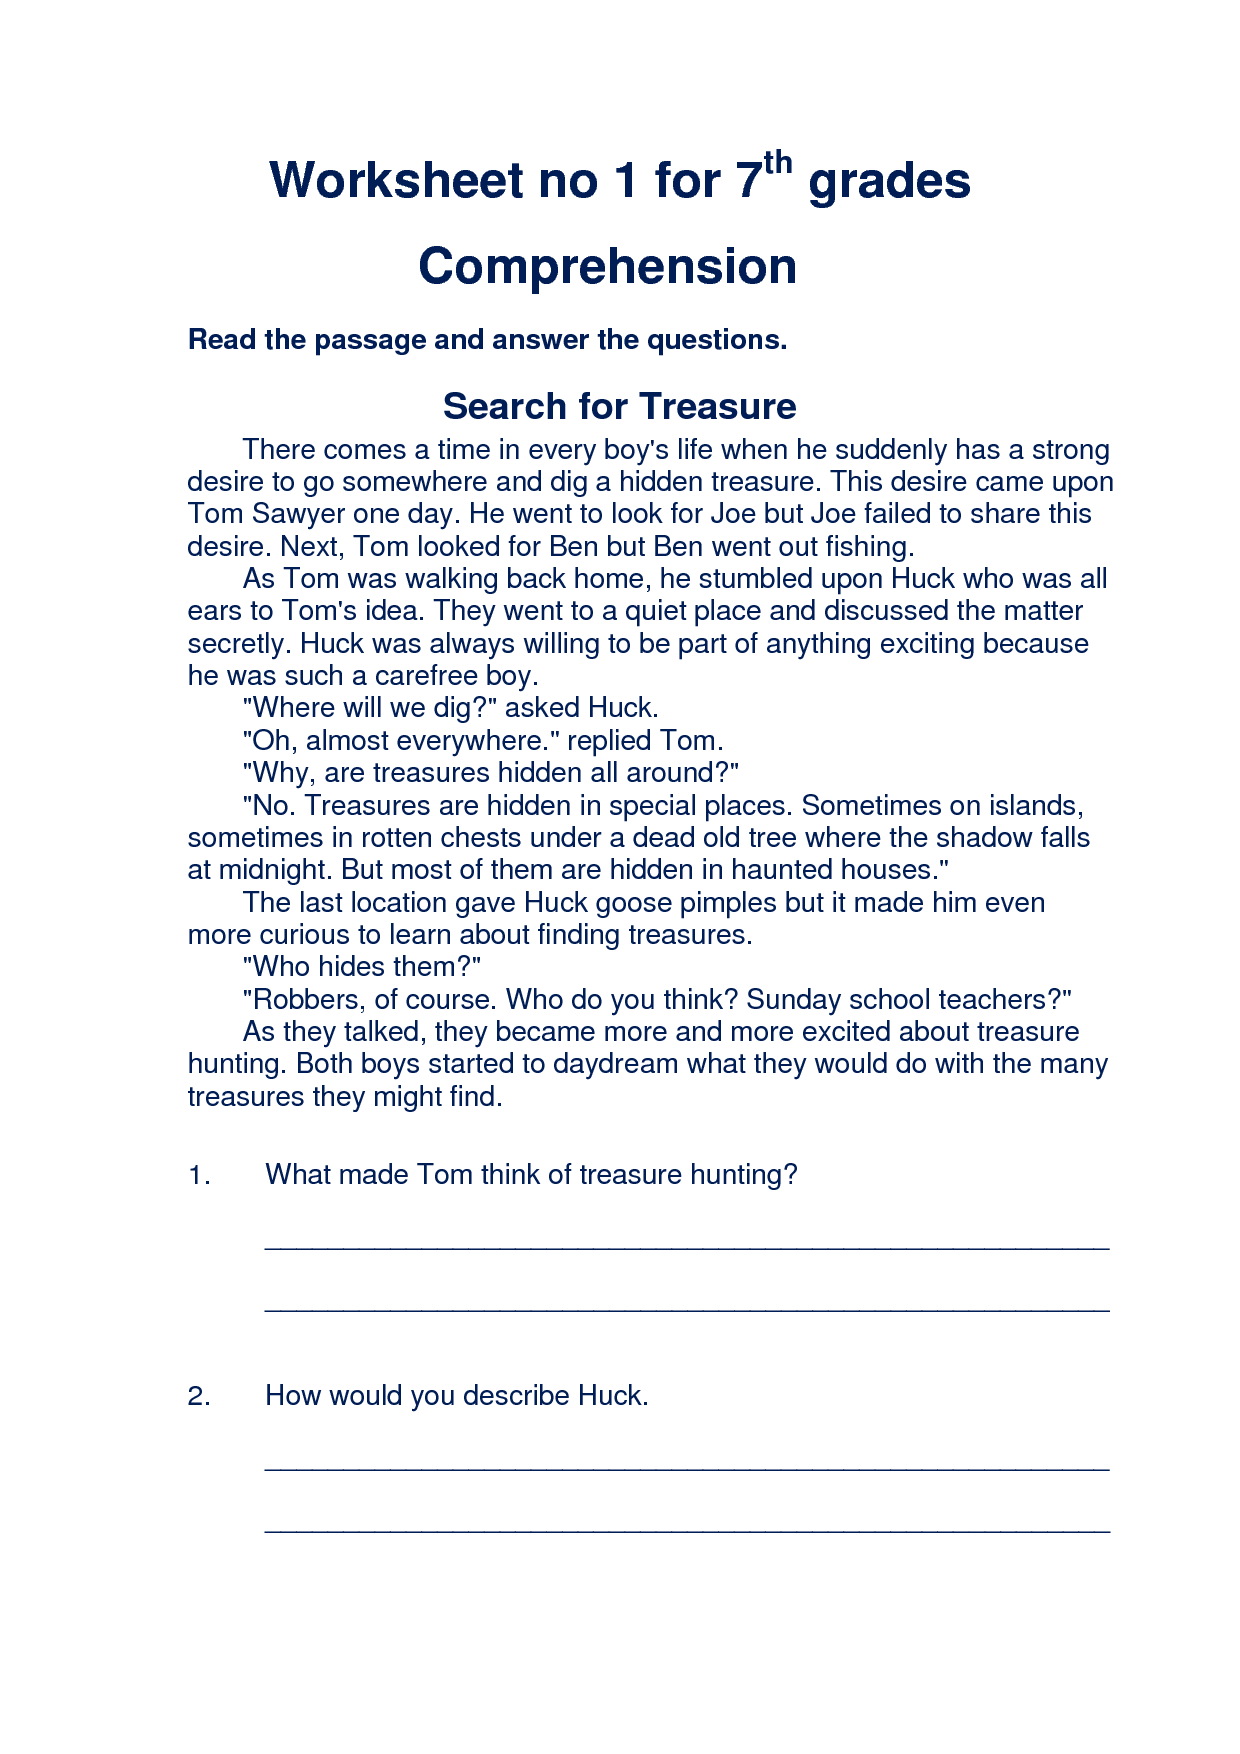 Worksheet Free Reading Worksheets For Grade 1 Wosenly Free Worksheet – Free Printable Reading Comprehension Worksheets for 2nd Grade